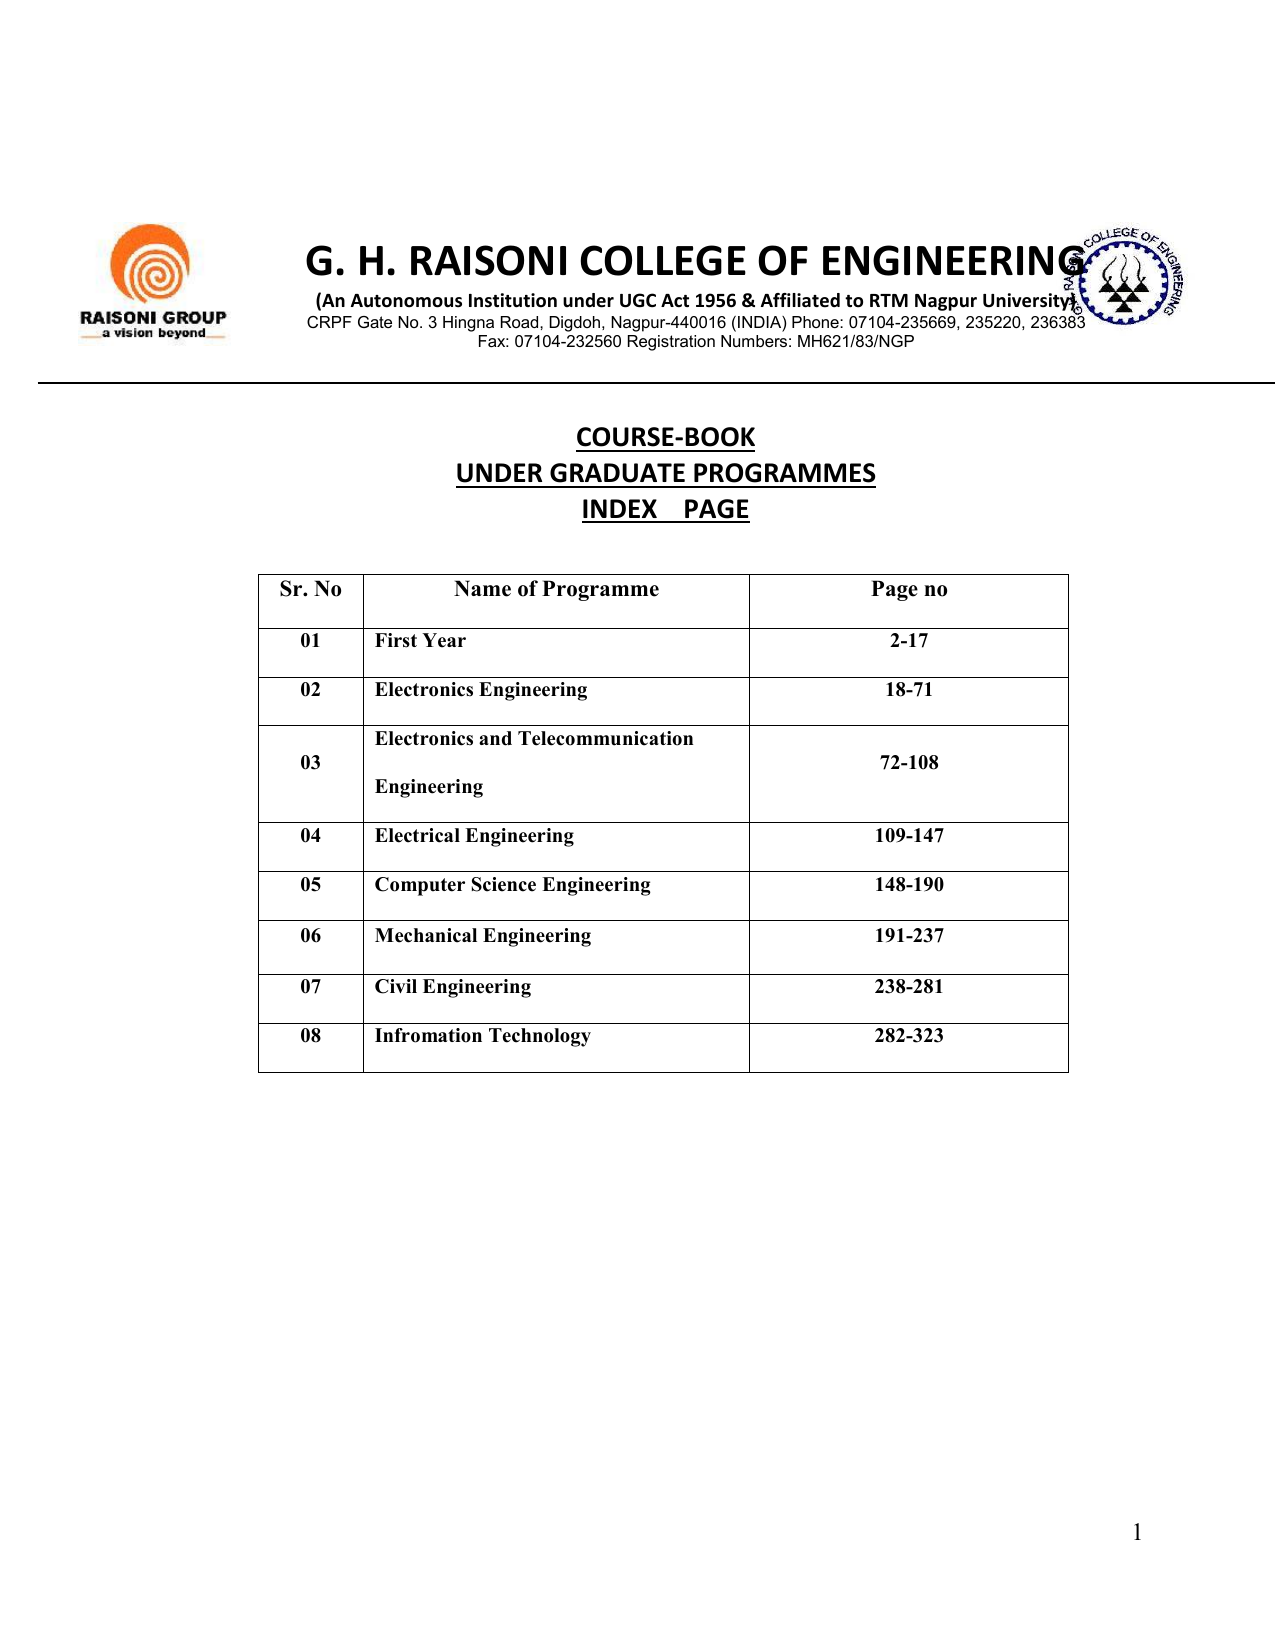 Ug course book 2015 16 gh raisoni college of engineering ccuart Images